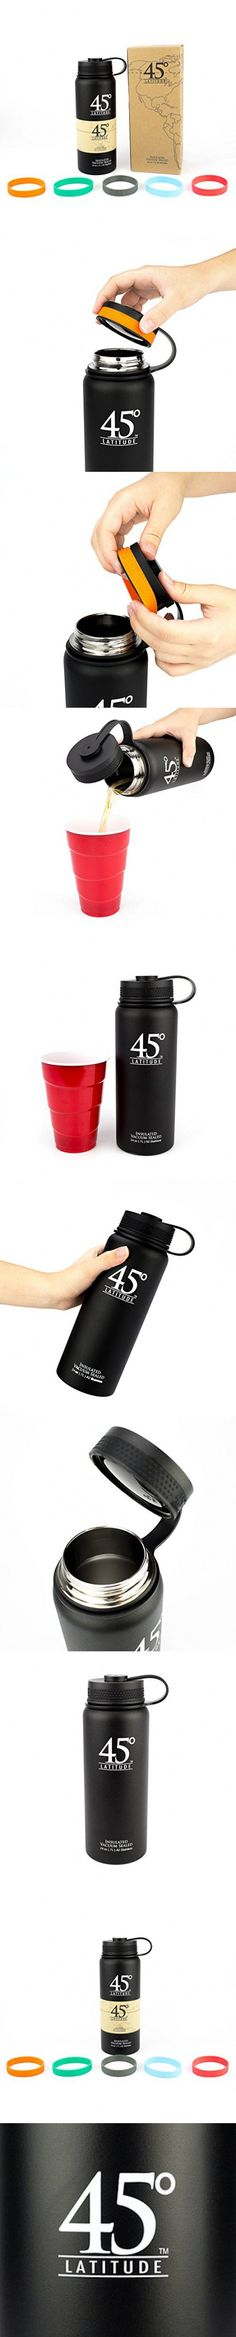 45 Degree Latitude Stainless Steel Insulated Vacuum Sealed Water Bottle, 24-Ounce, Black